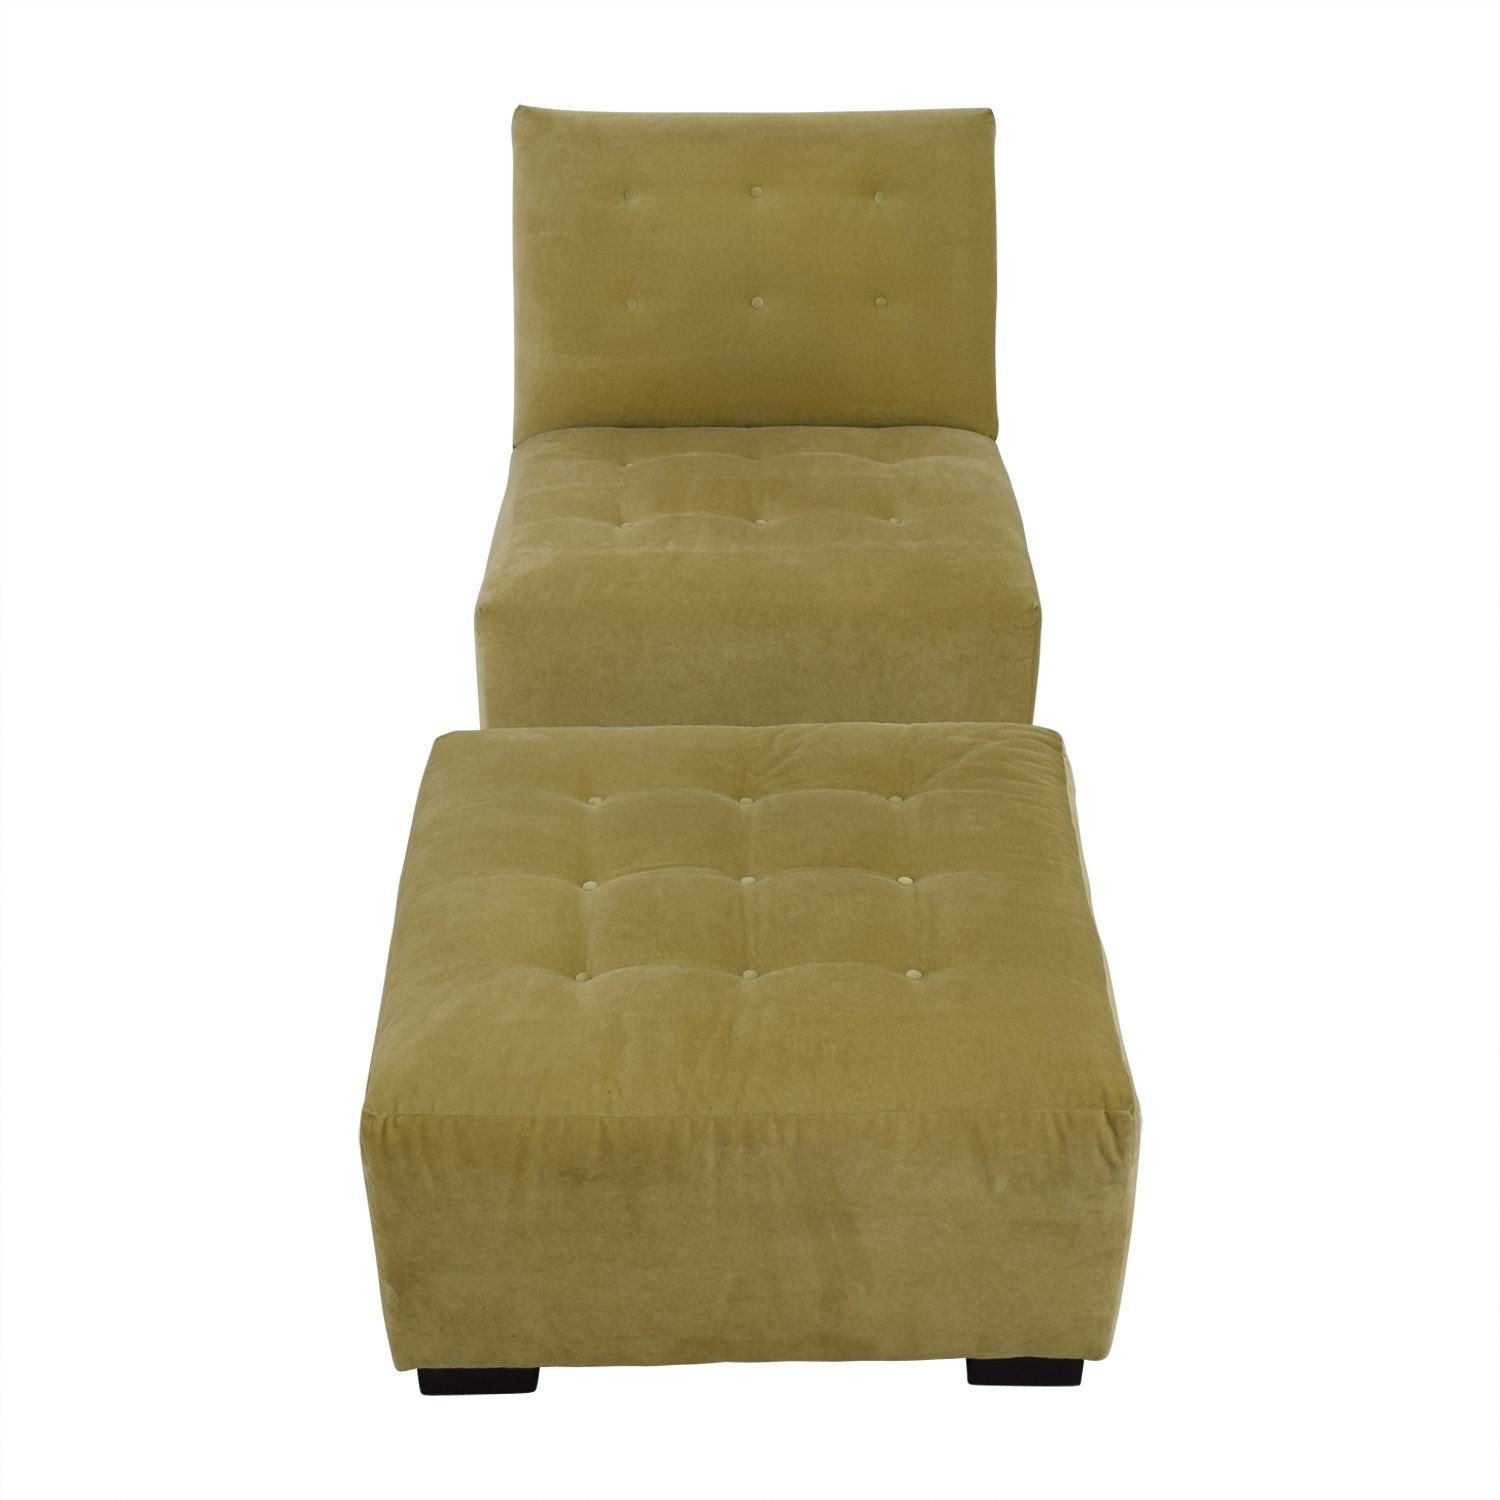 Mitchell Gold + Bob Williams Mitchell Gold + Bob Williams Sage Green Tufted Velvet Lounge Chair & Ottoman discount